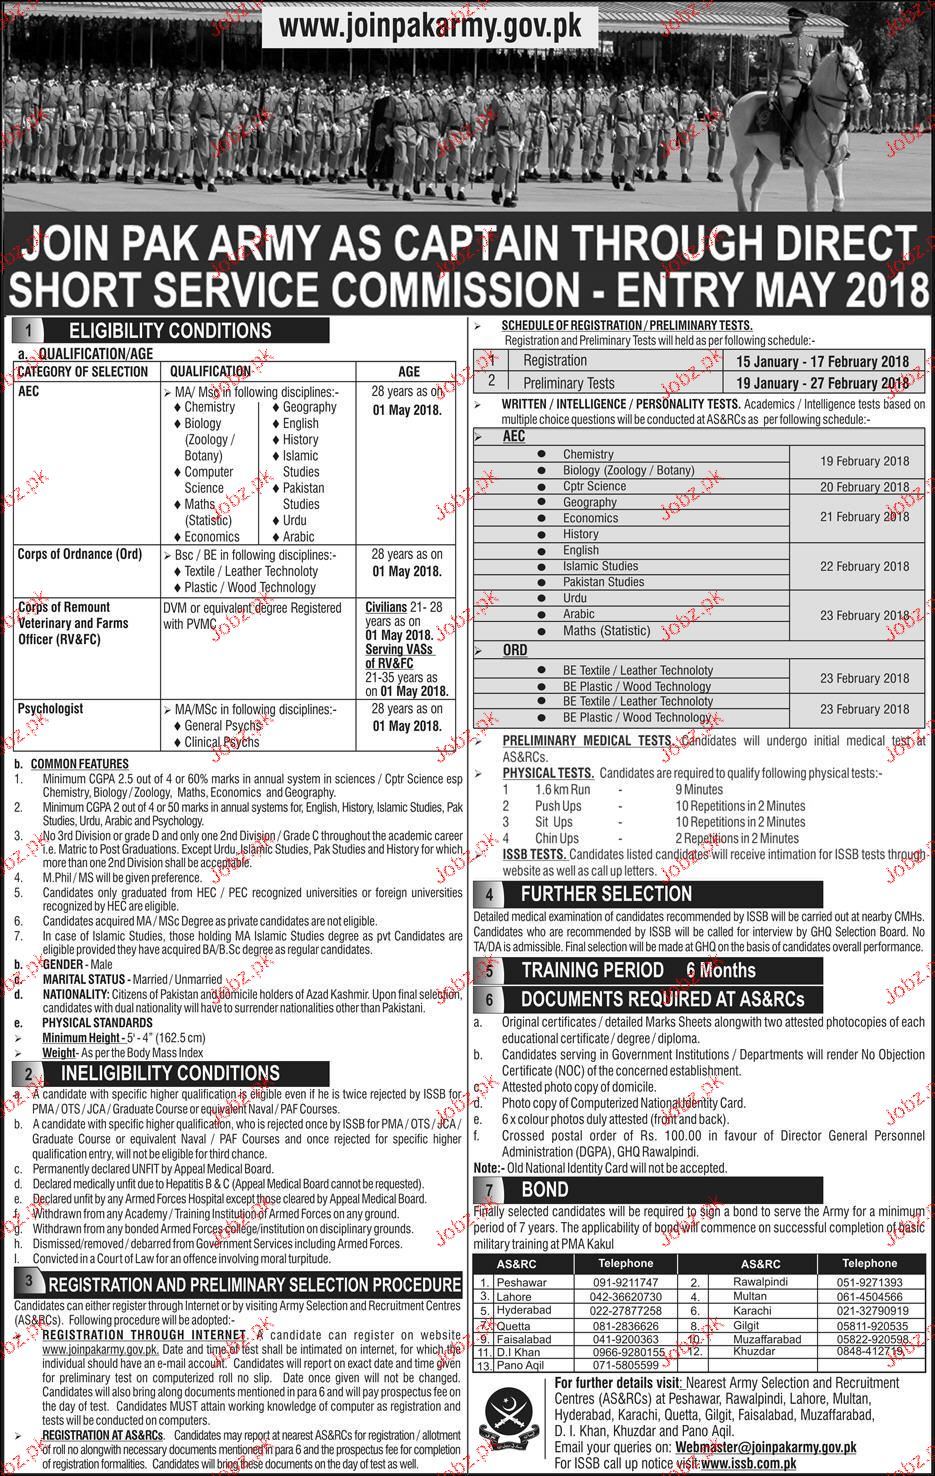 Join Pakistan Army As Captain Through Service Commission